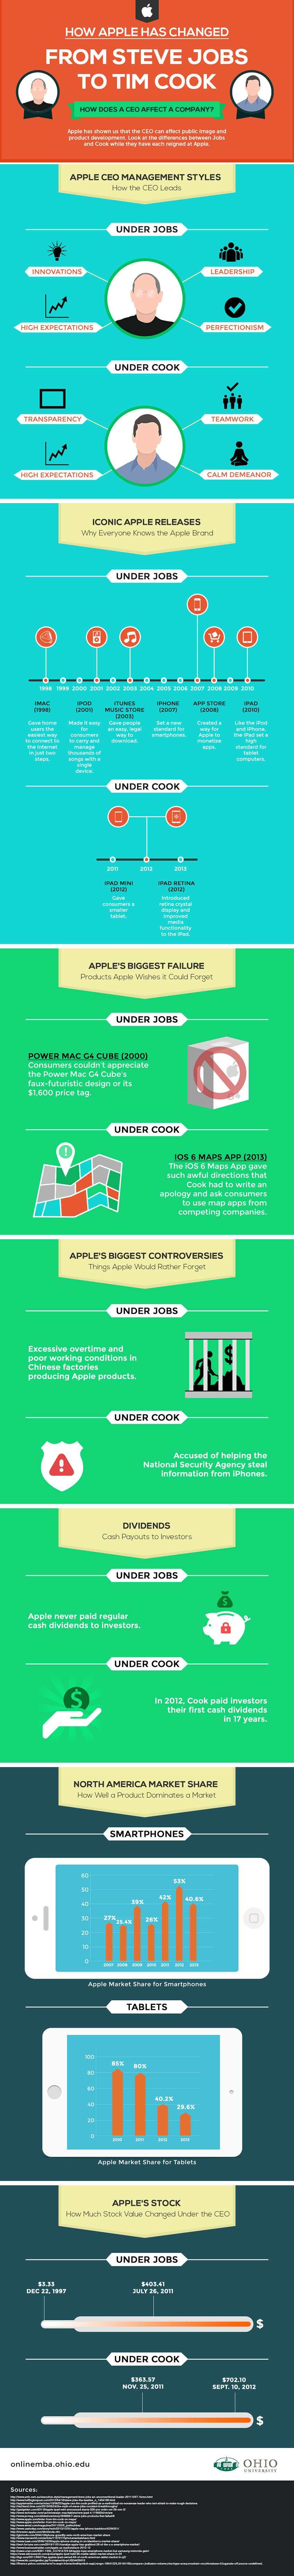 How Apple Has Changed From Steve Jobs To Tim Cook #Infographic